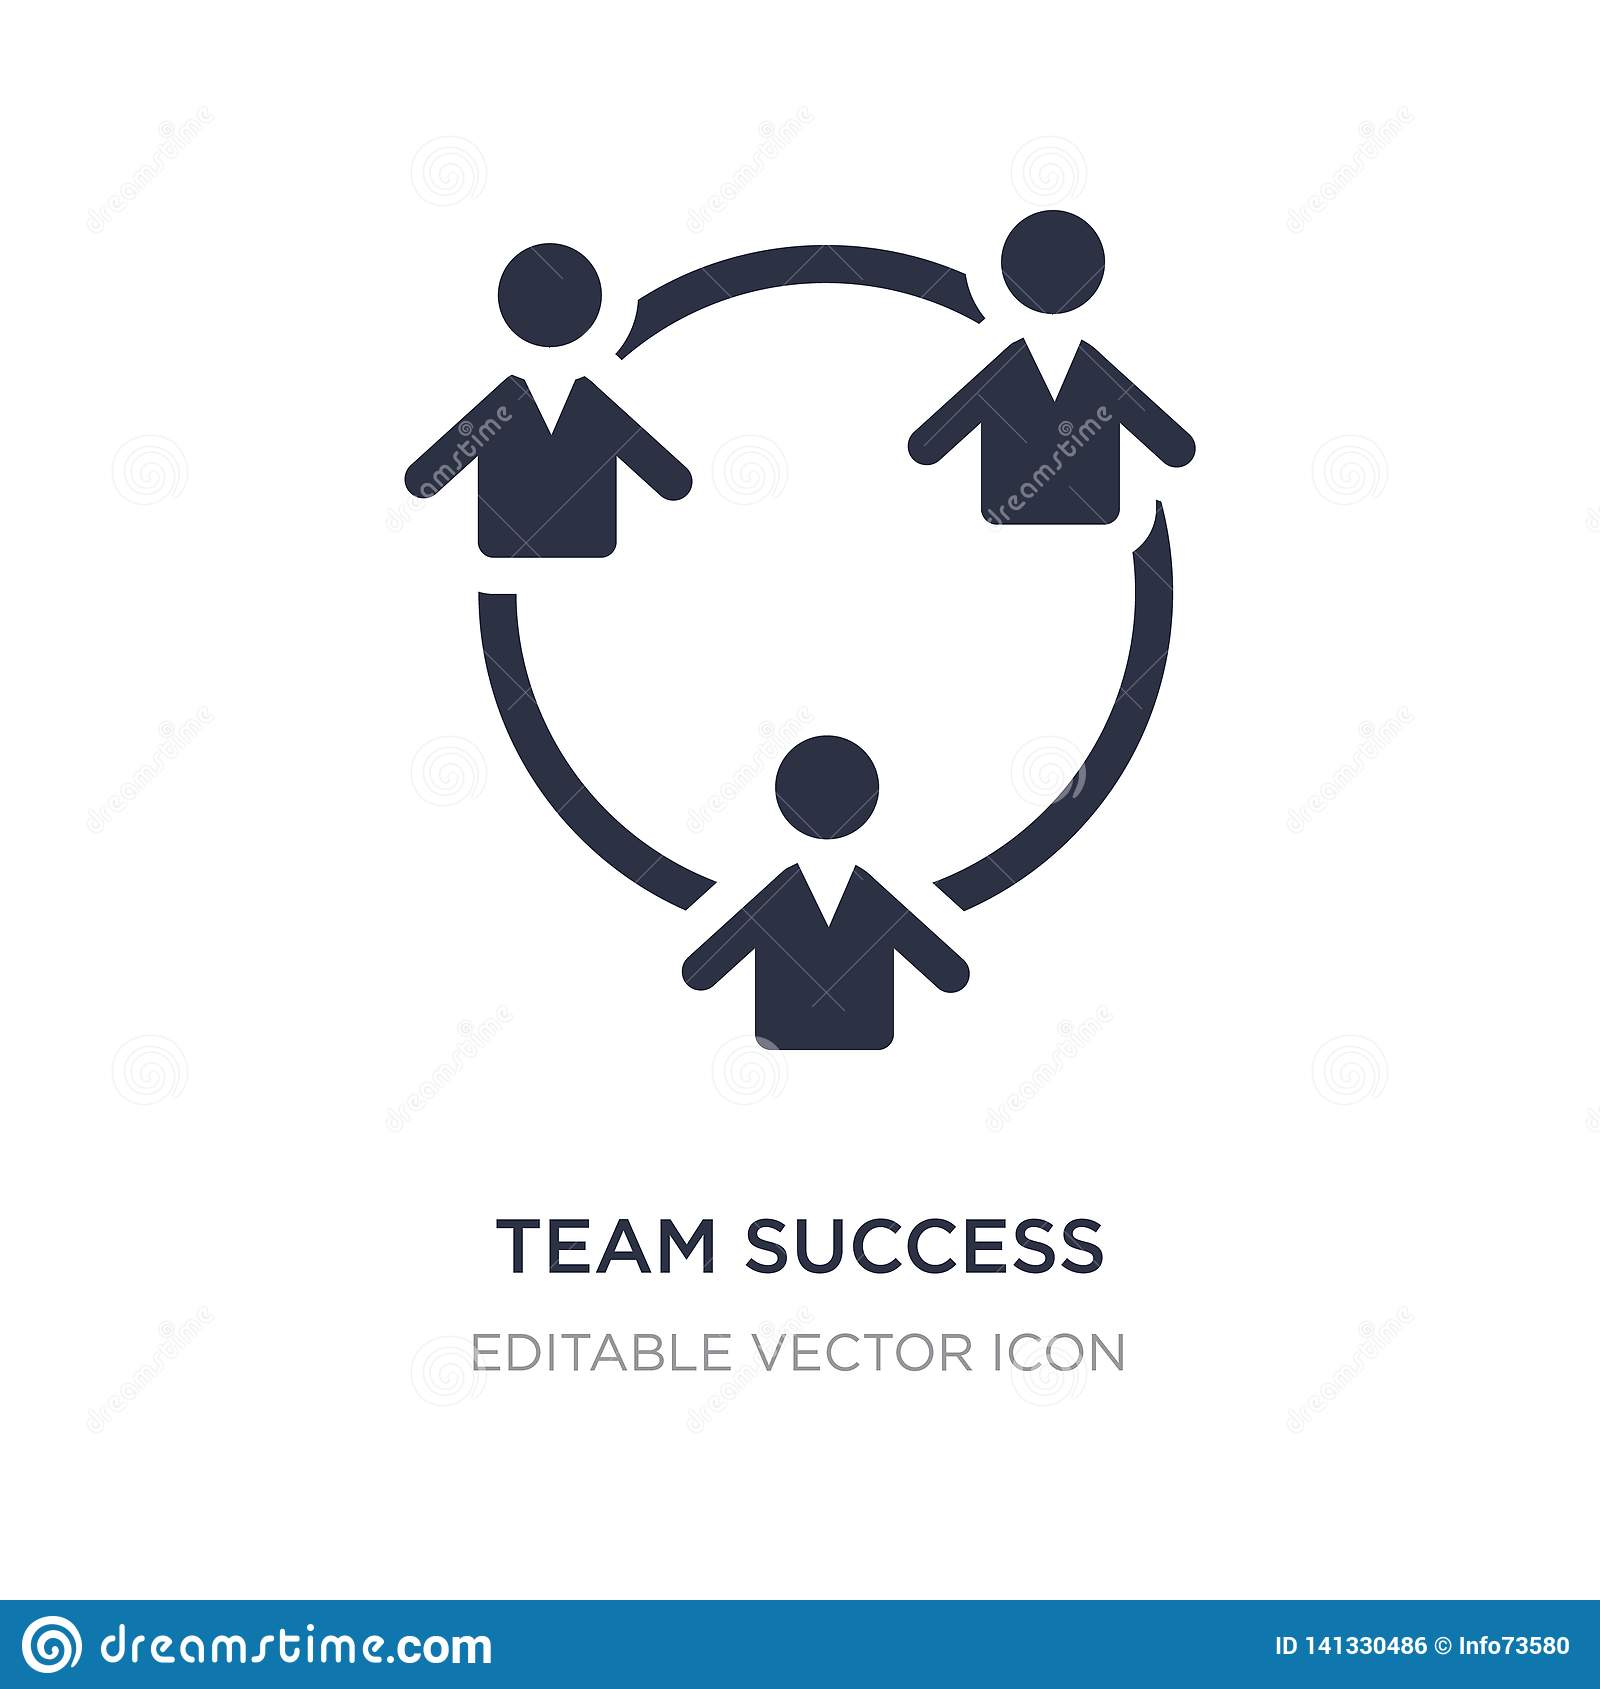 team success icon on white background. Simple element illustration from People concept